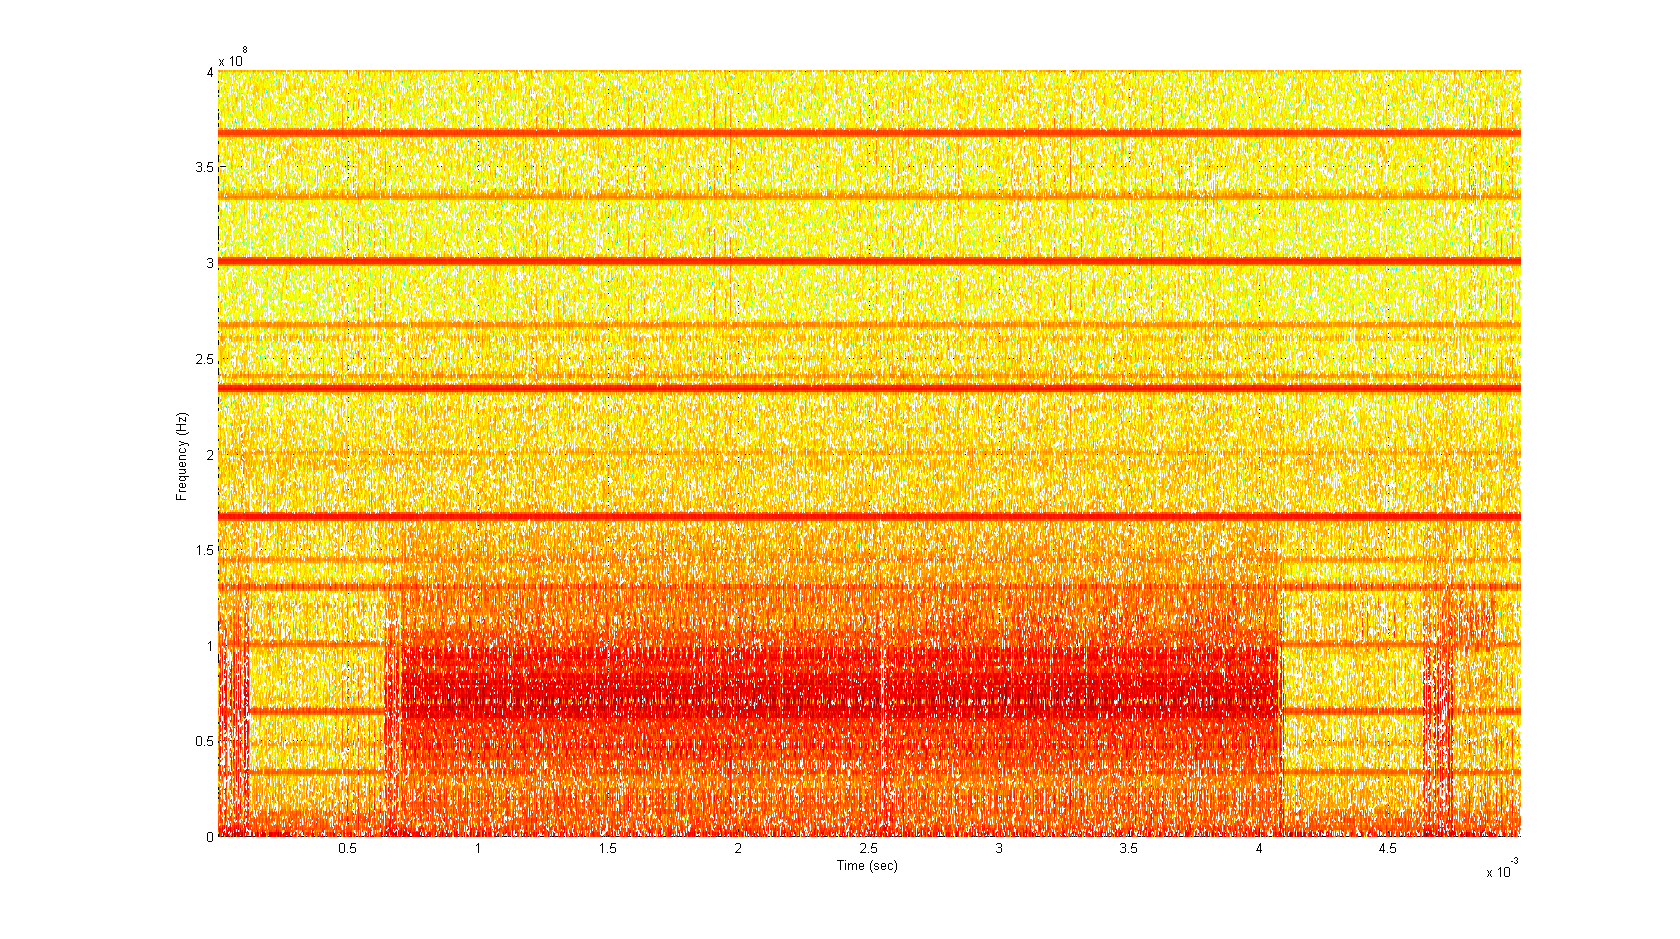 result by the base. The complete C code can be found under the Appendix. Below is a code snippet of the simple multiply-and-square RSA.